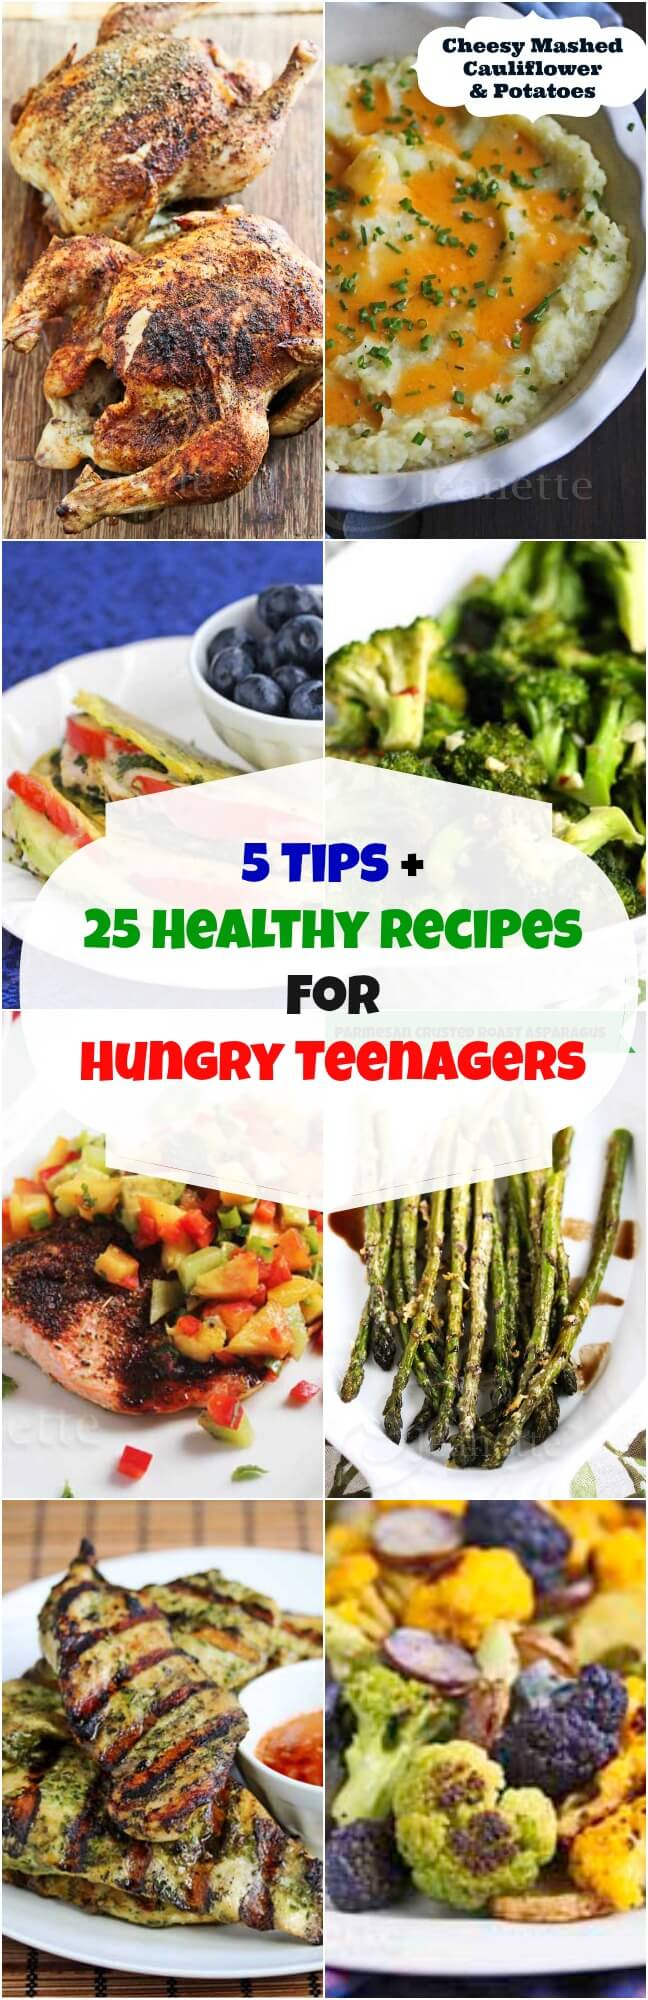 satisfy your growing teenager's appetite with these whole food recipes that are not only healthy, but delicious